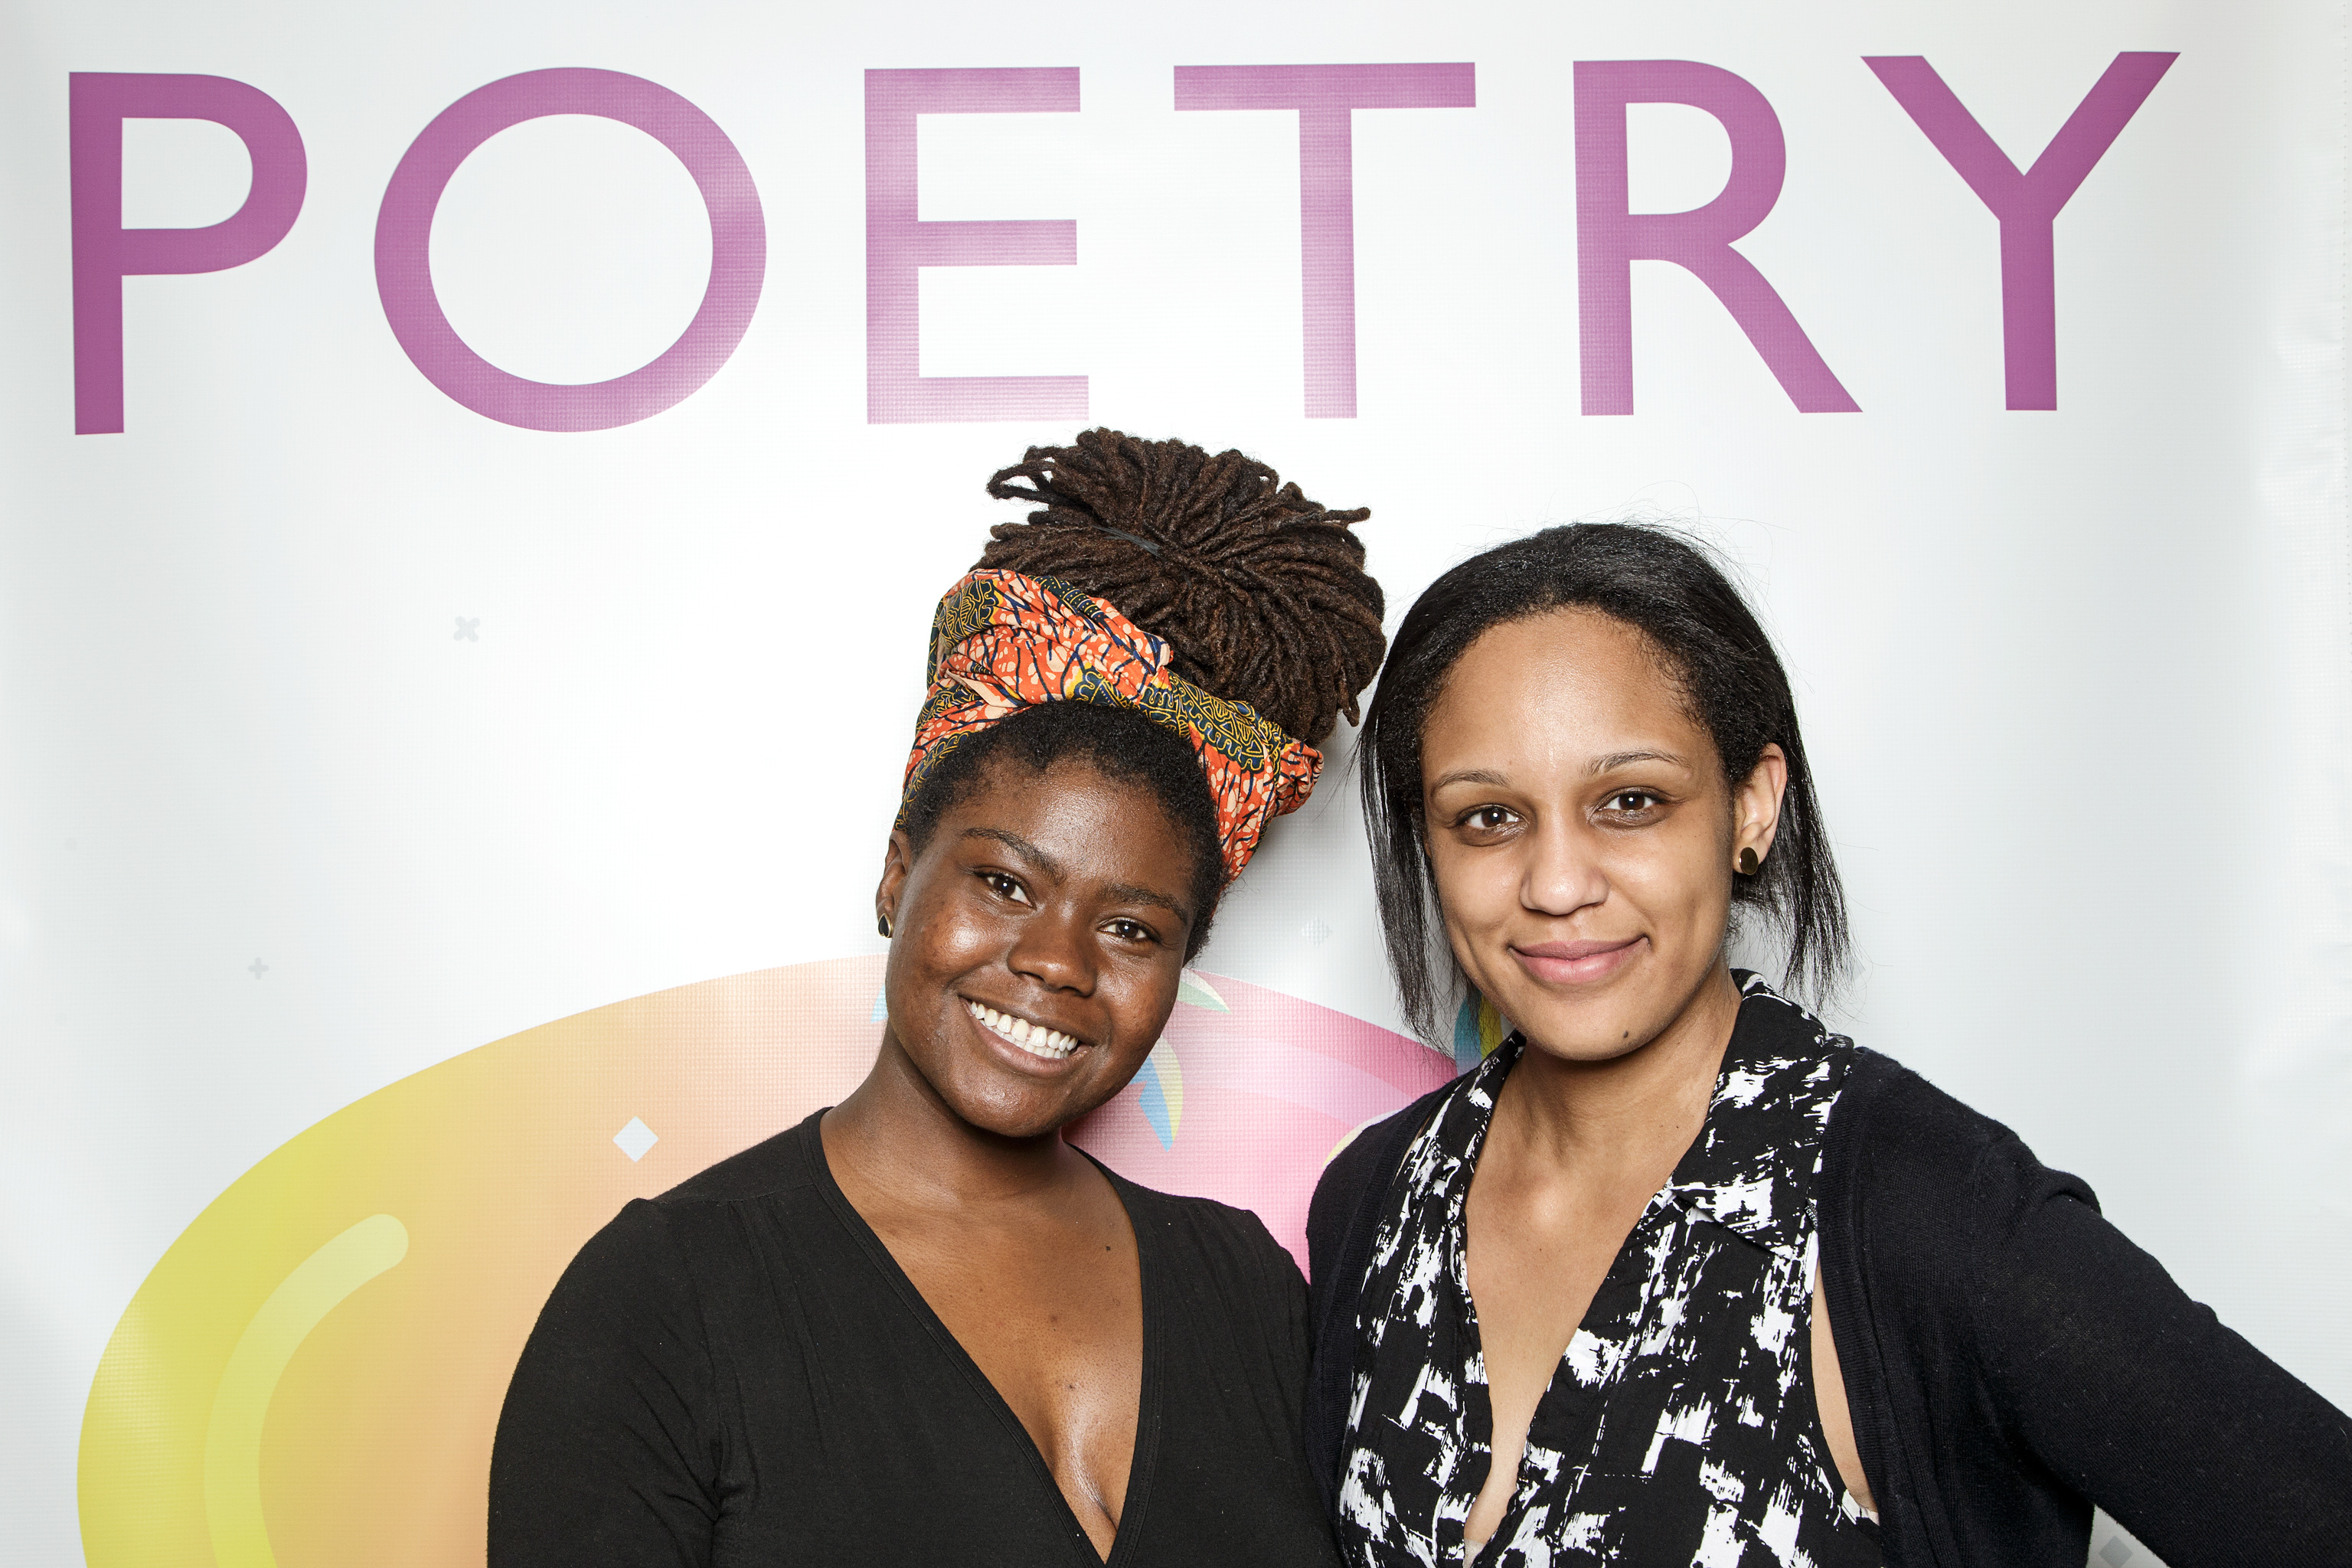 portrait booth photos from the poetry foundation, may 2017